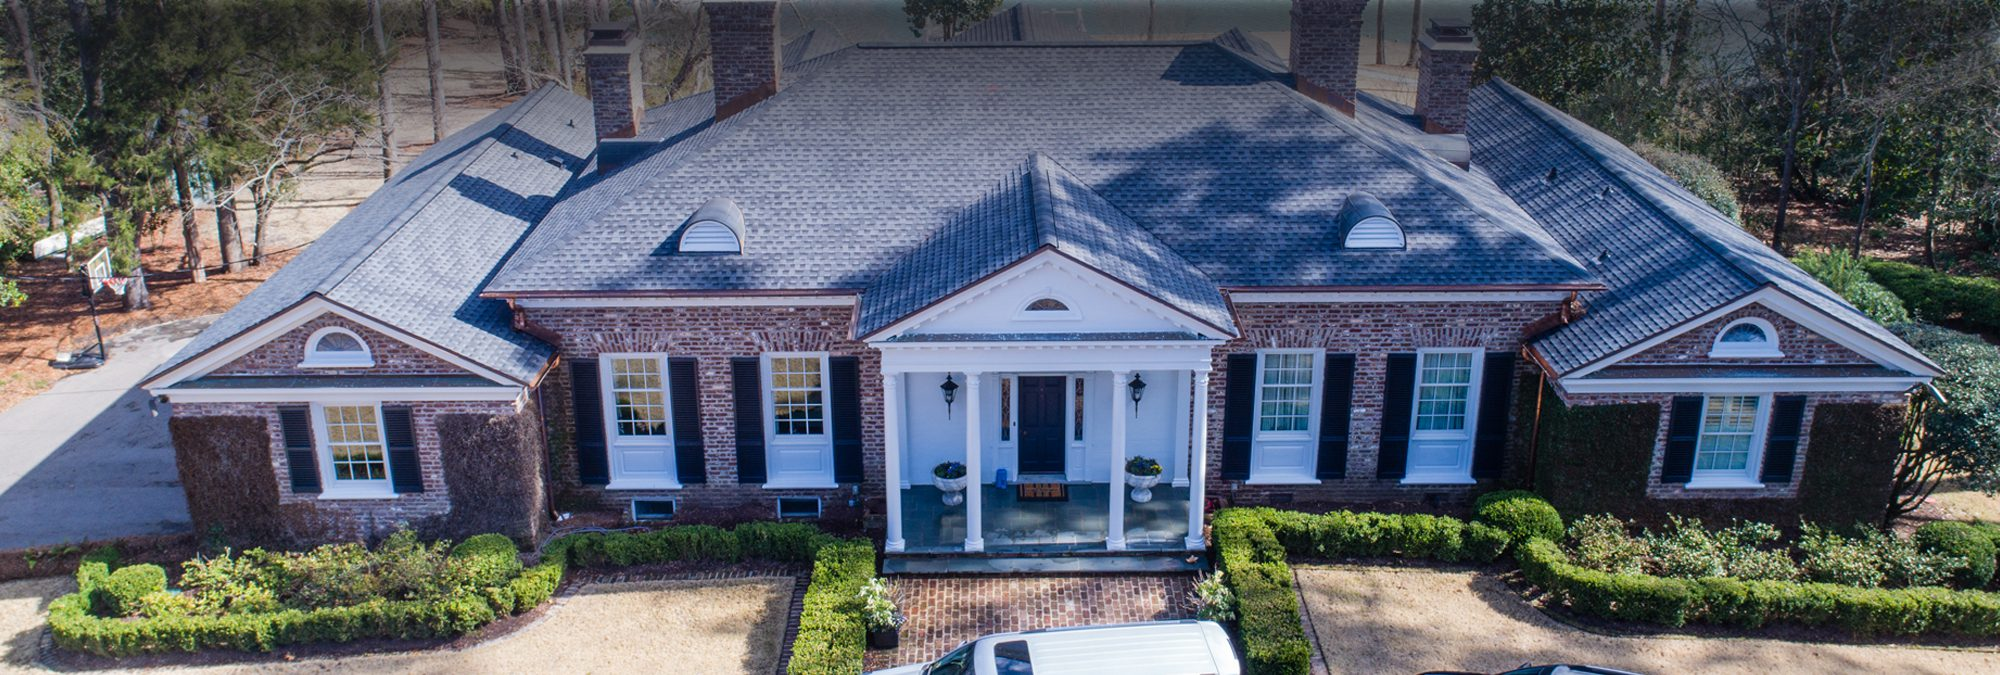 Myrtle Beach Residential Roofing Company